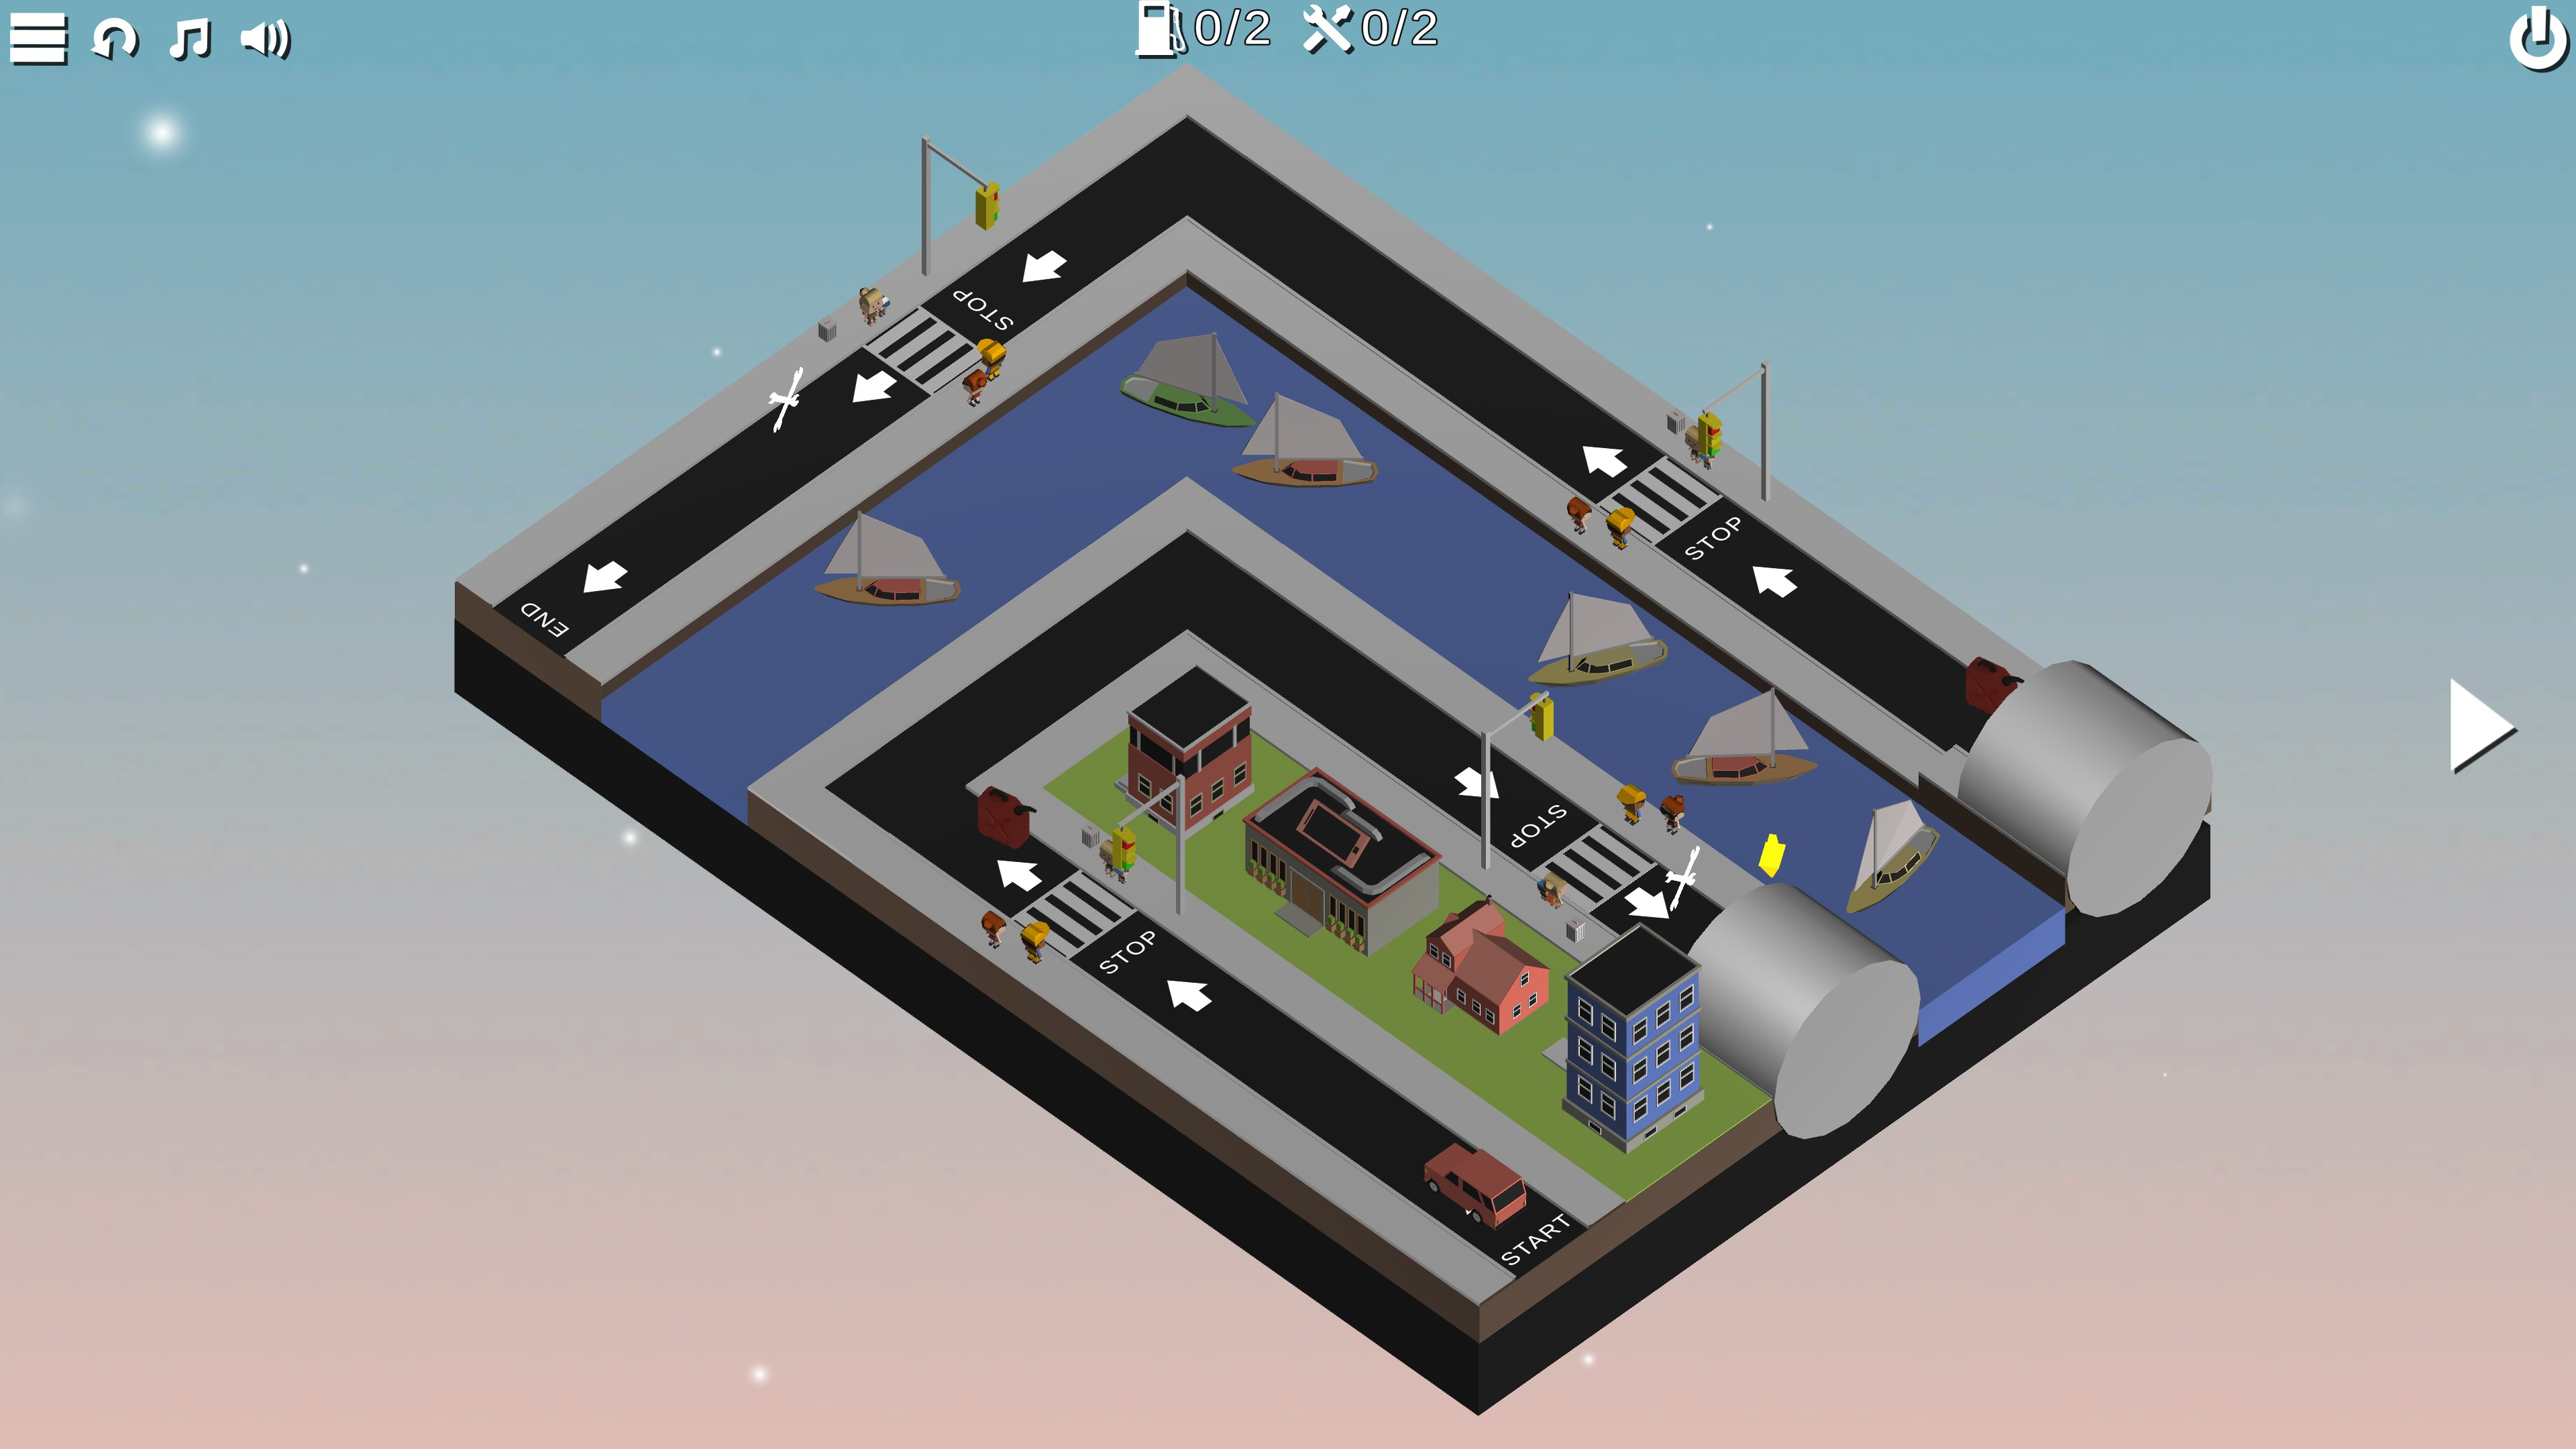 Puzzle Car. Level with the board divided by a boat canal. A pair of tunnels are visible across the canal from each other.